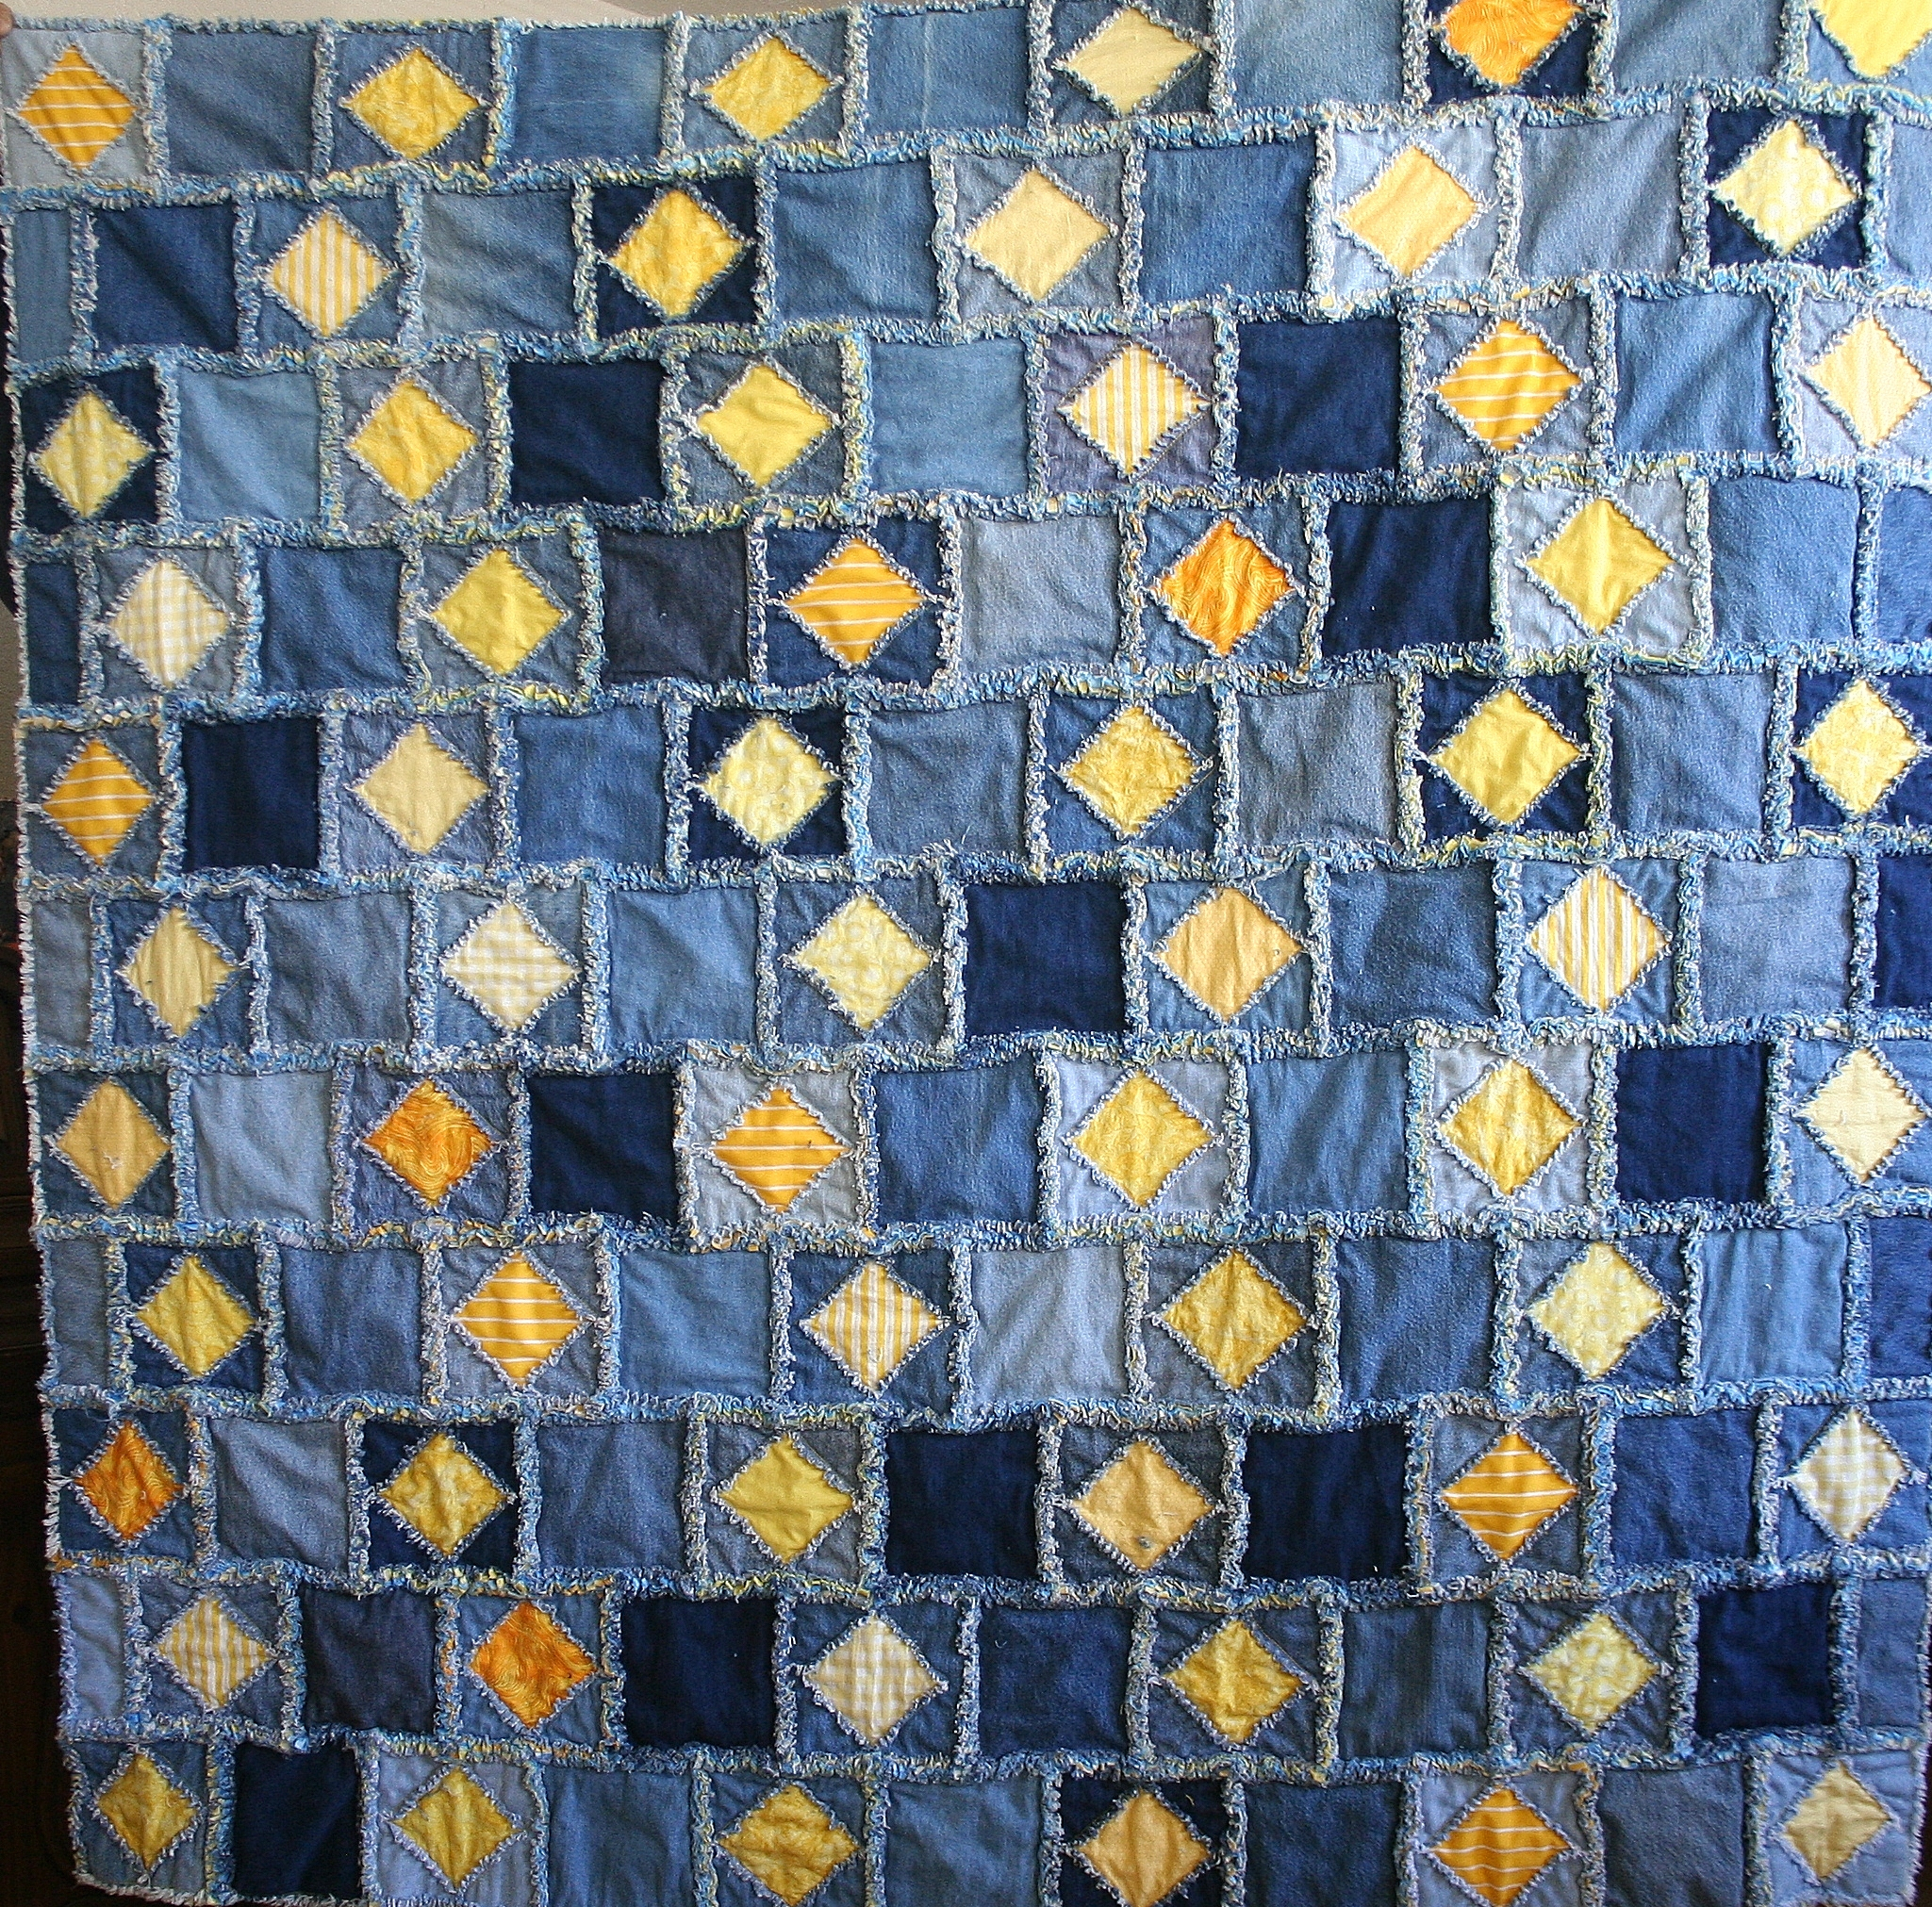 my mom kryson in pin collection gave kreations quilts more glass stained s quilt this beautiful amazing denim